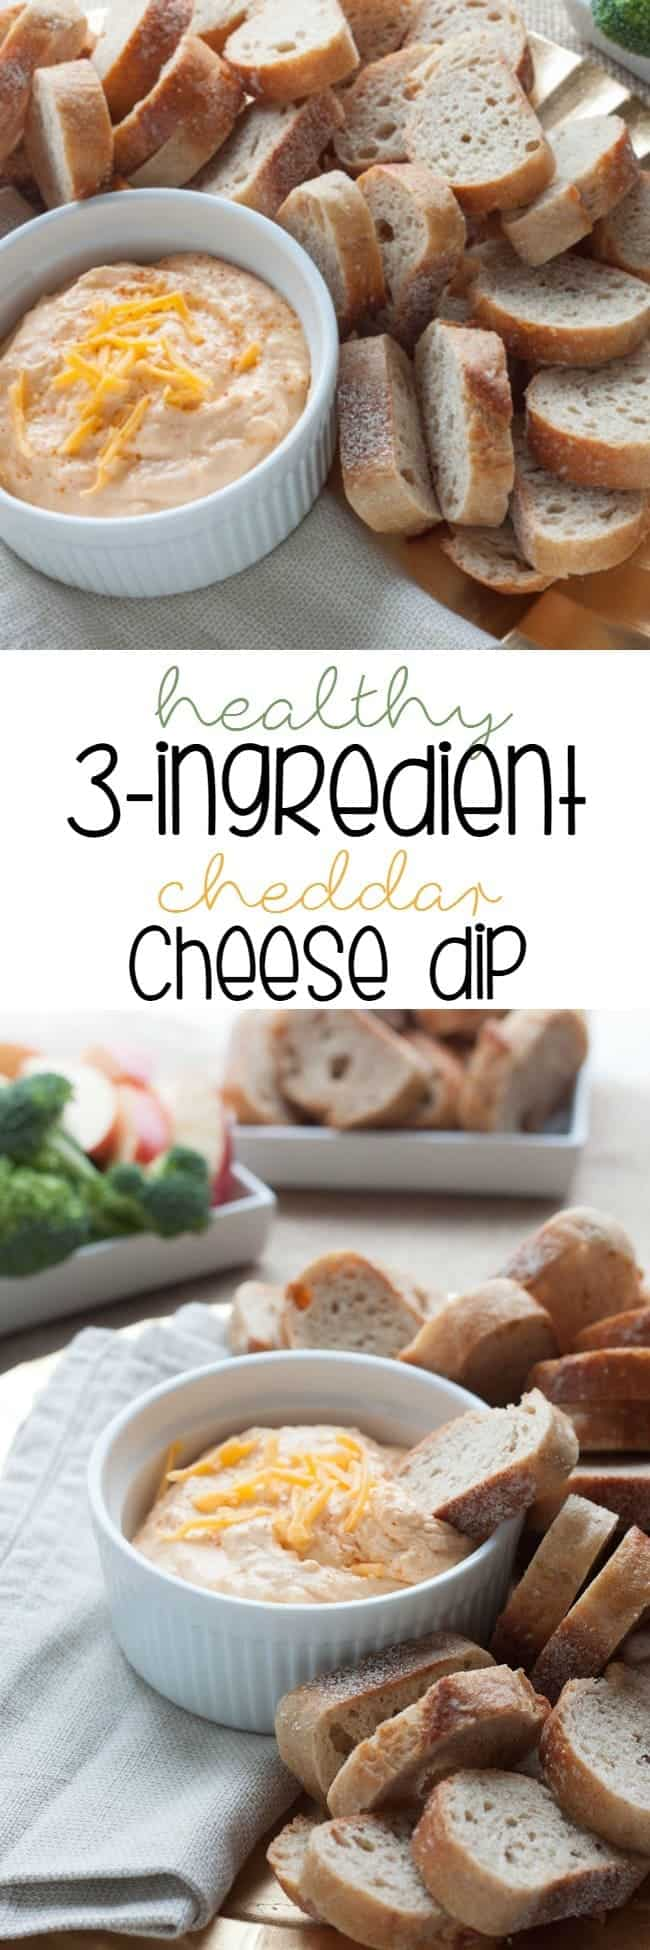 Healthy 3-Ingredient Spicy Cheddar Cheese Dip - Save the day by bringing this super easy and healthy appetizer to your next holiday dinner